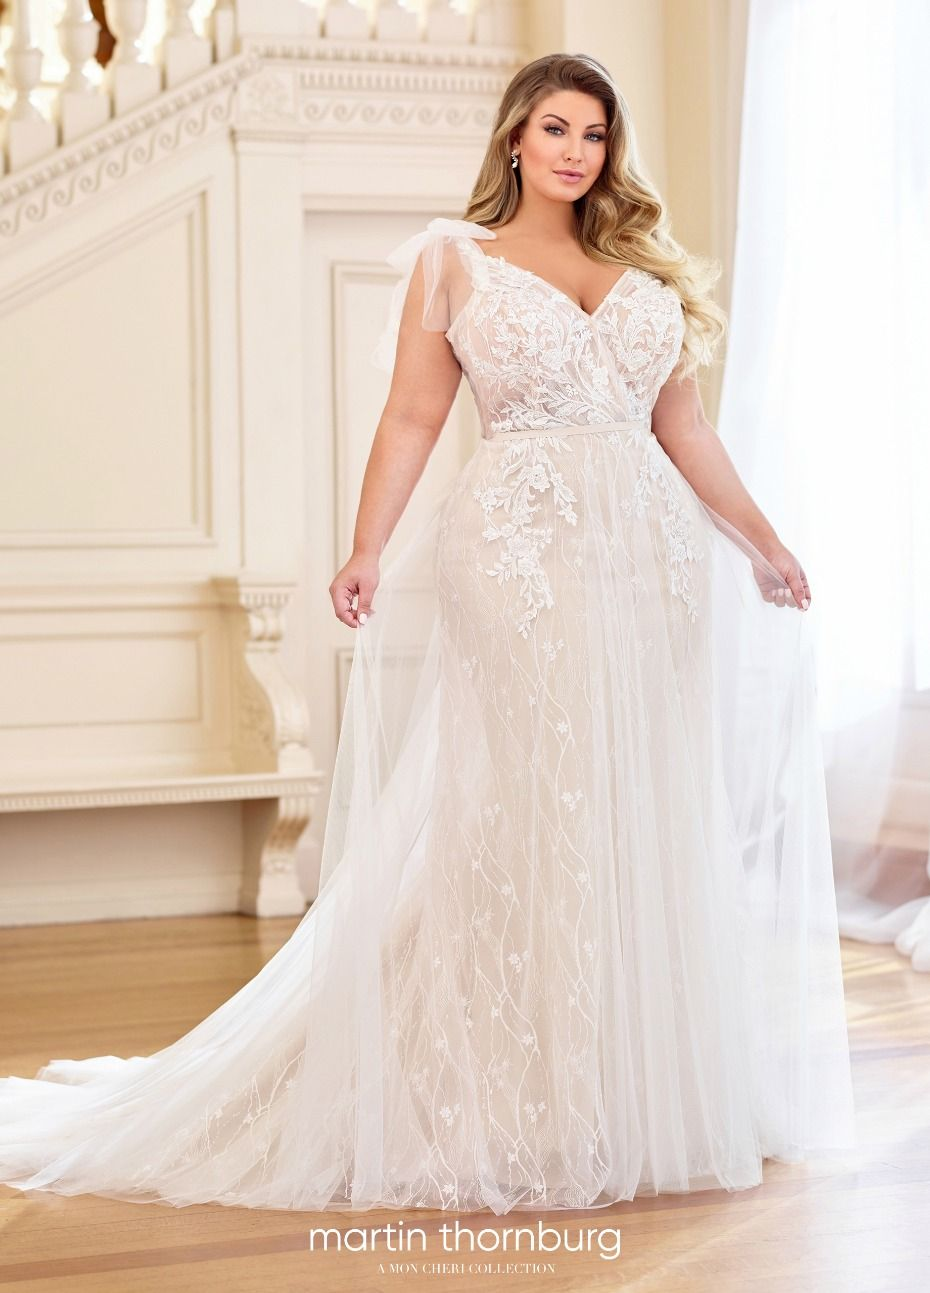 20 of Our Favorite Gowns for Girls With Curves Plus